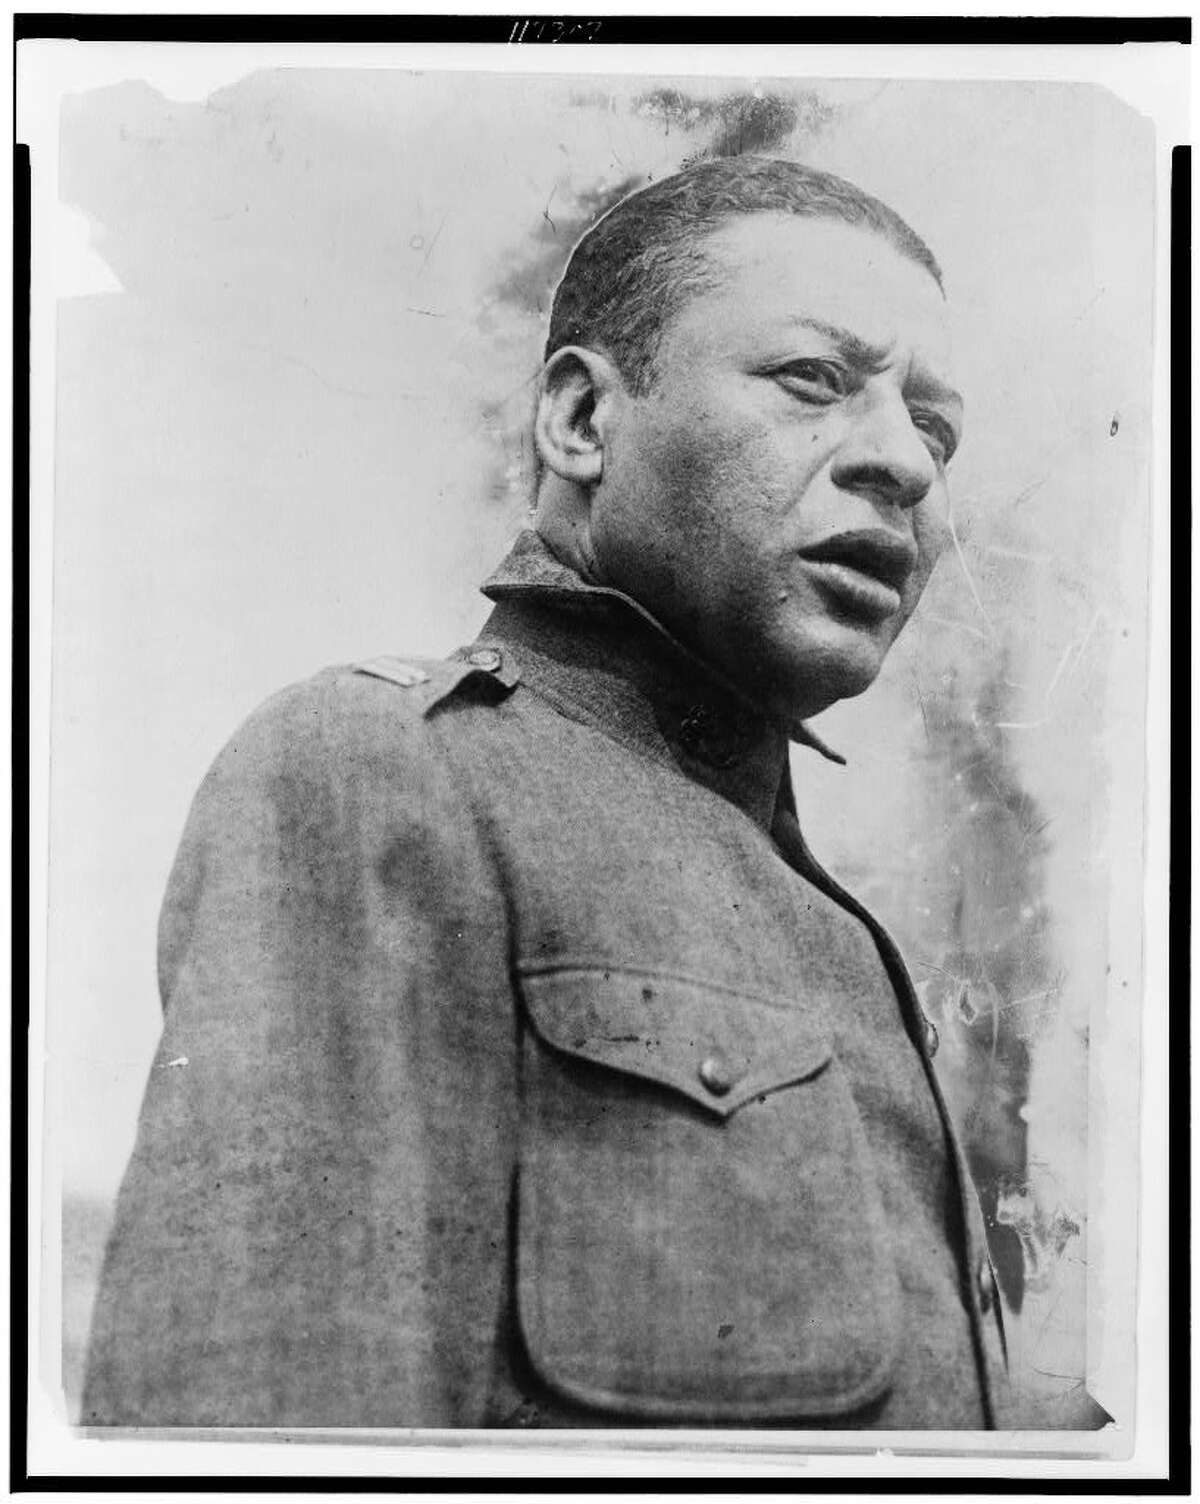 Bert Williams, one of the most famous African American performers of his time, is shown